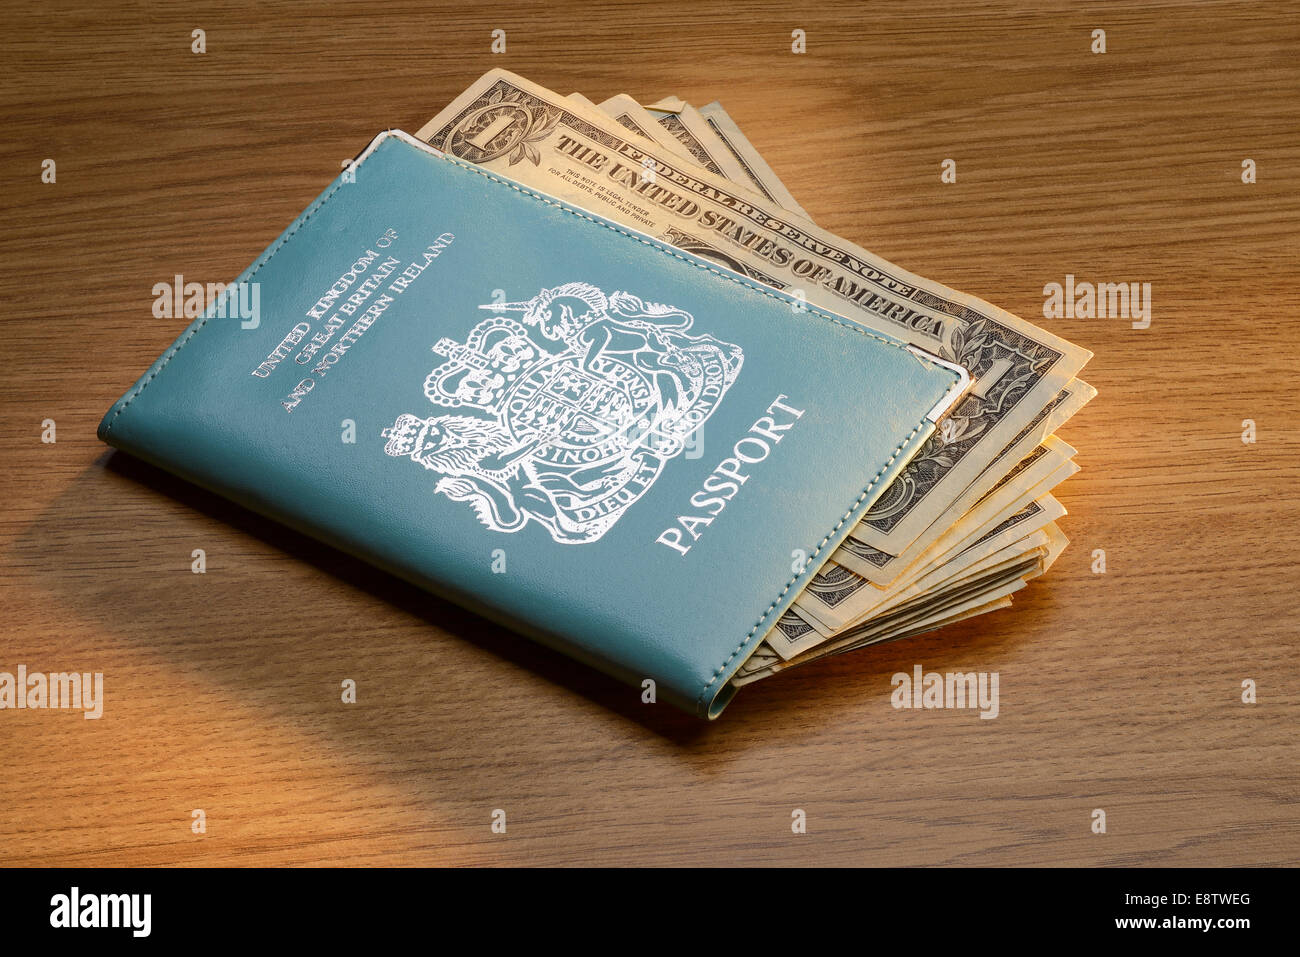 British passport and US dollars - Stock Image